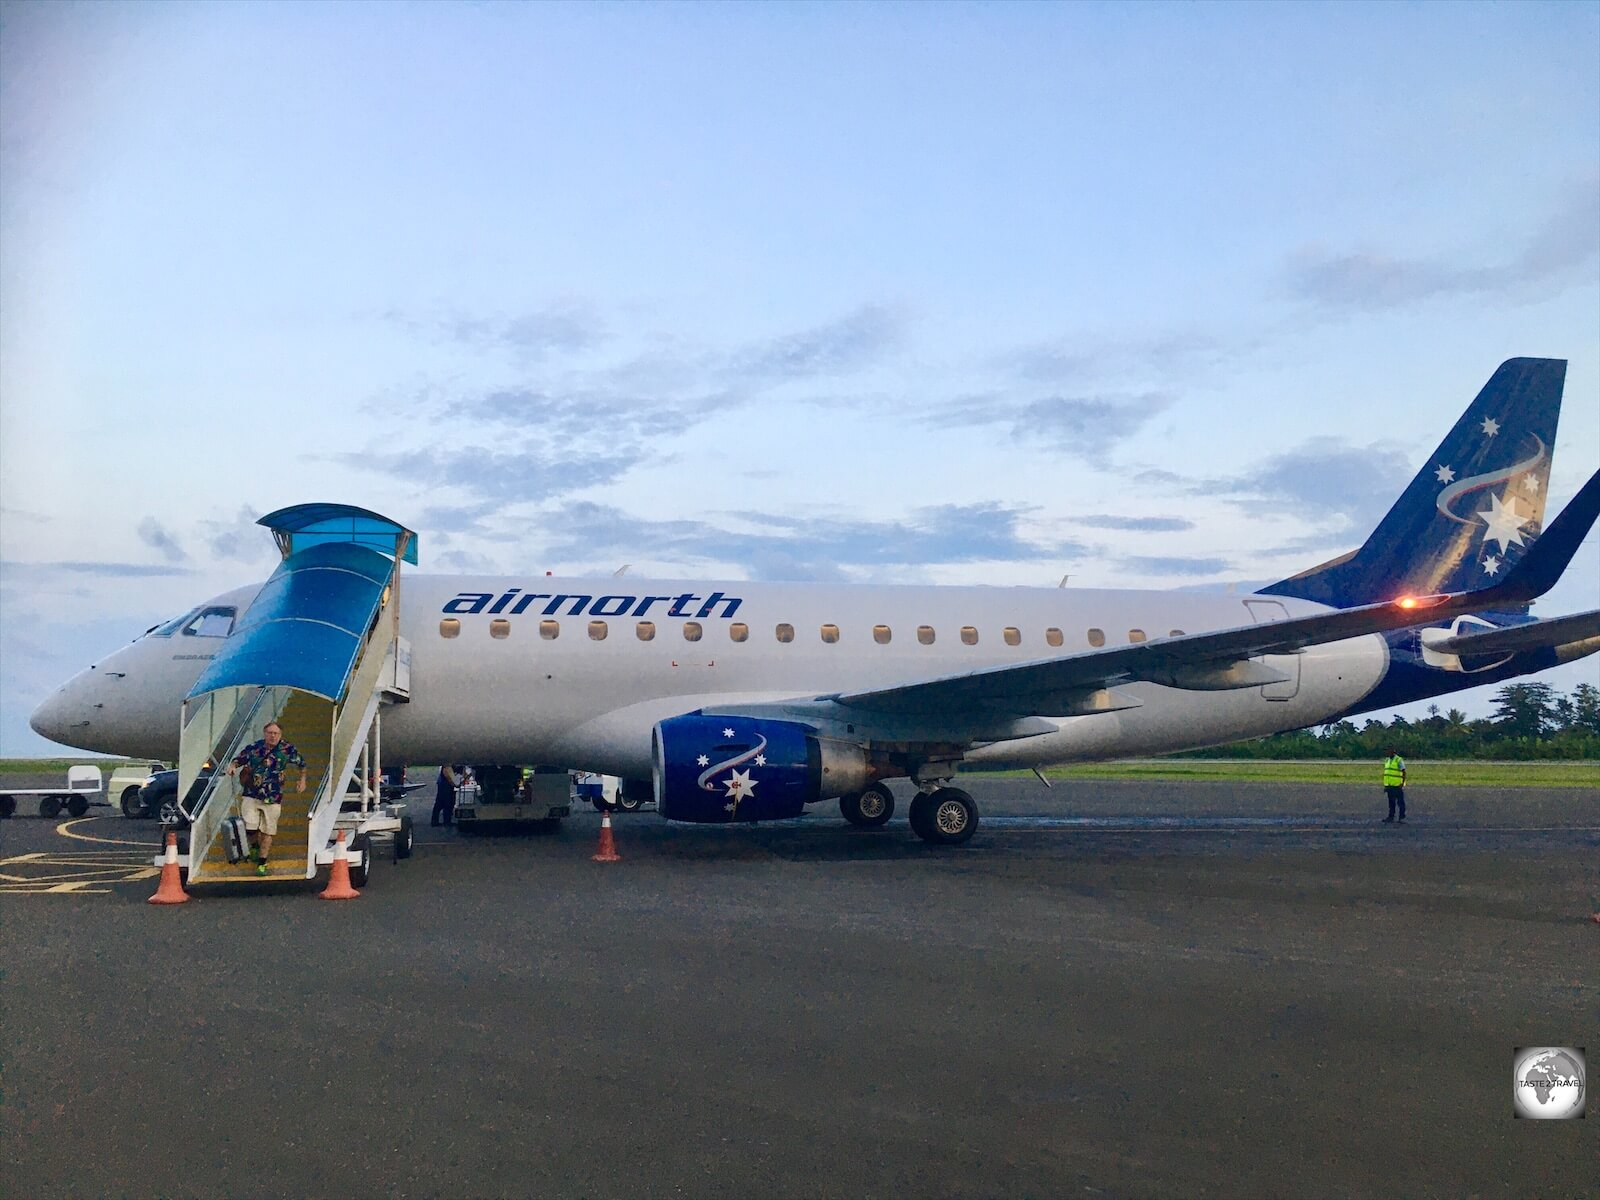 An early morning arrival at Dili airport. Airnorth connect Darwin to Dili on a daily basis.